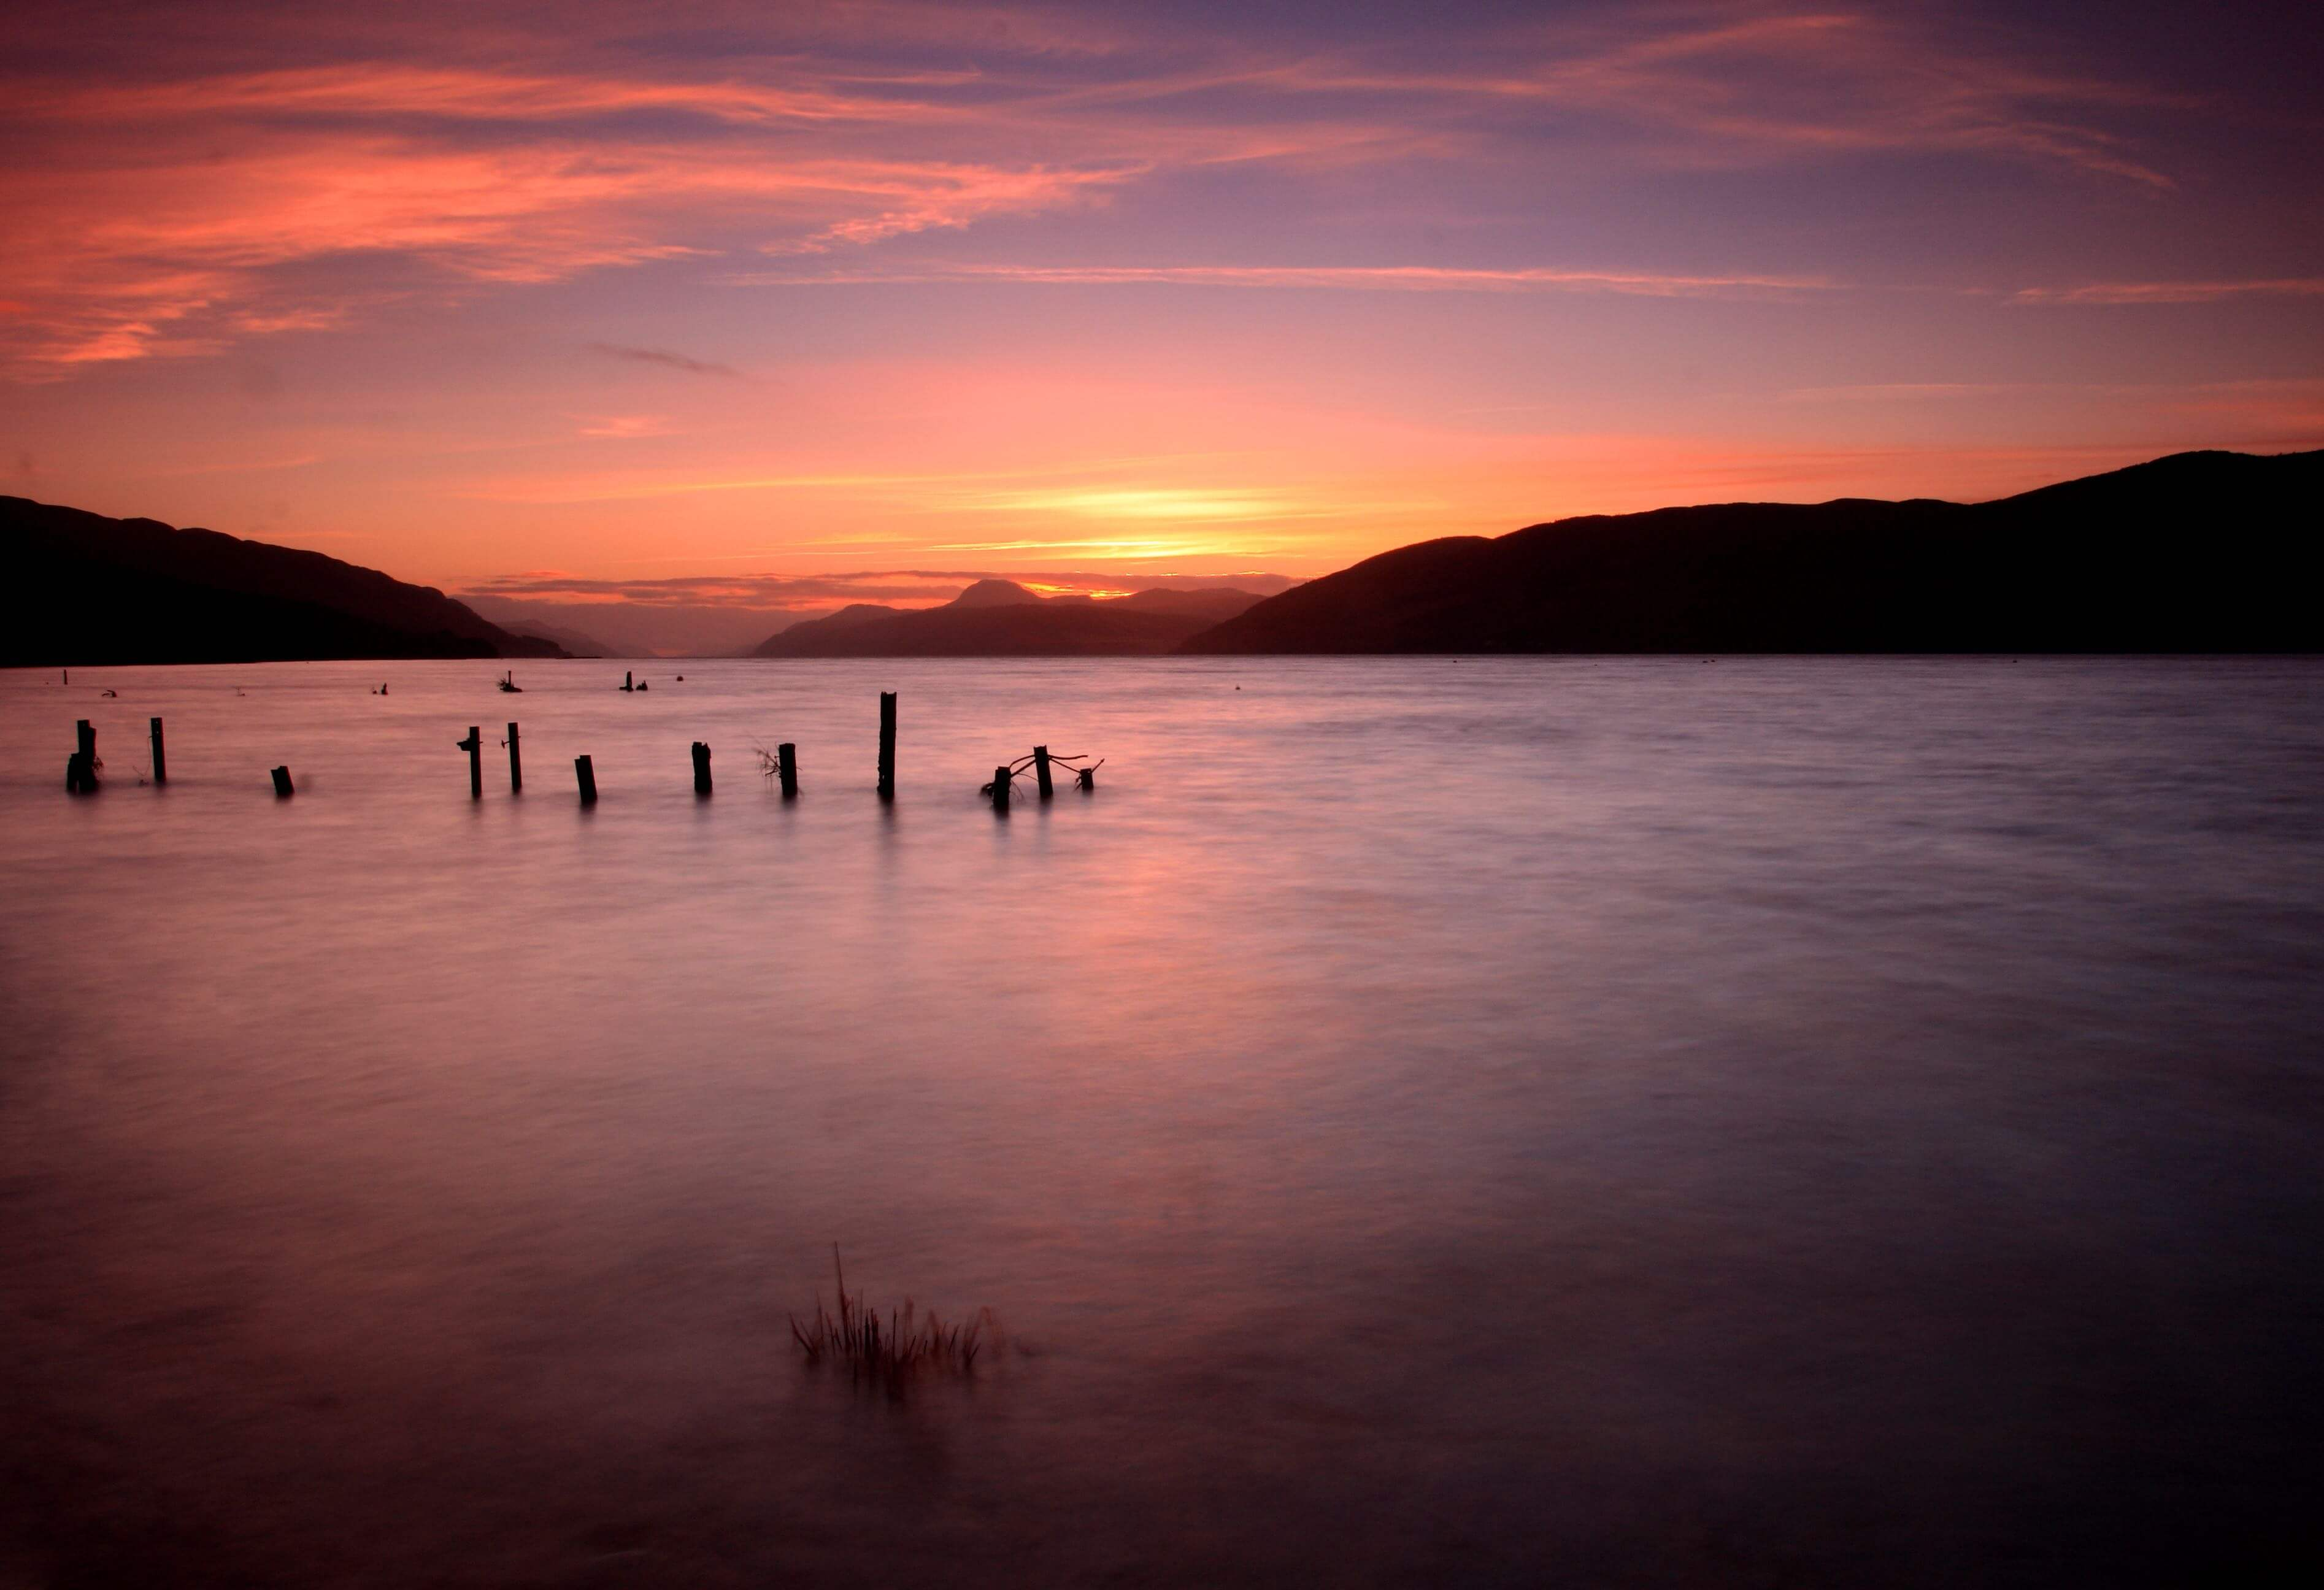 A dazzling sunset at the mysterious Loch Ness.